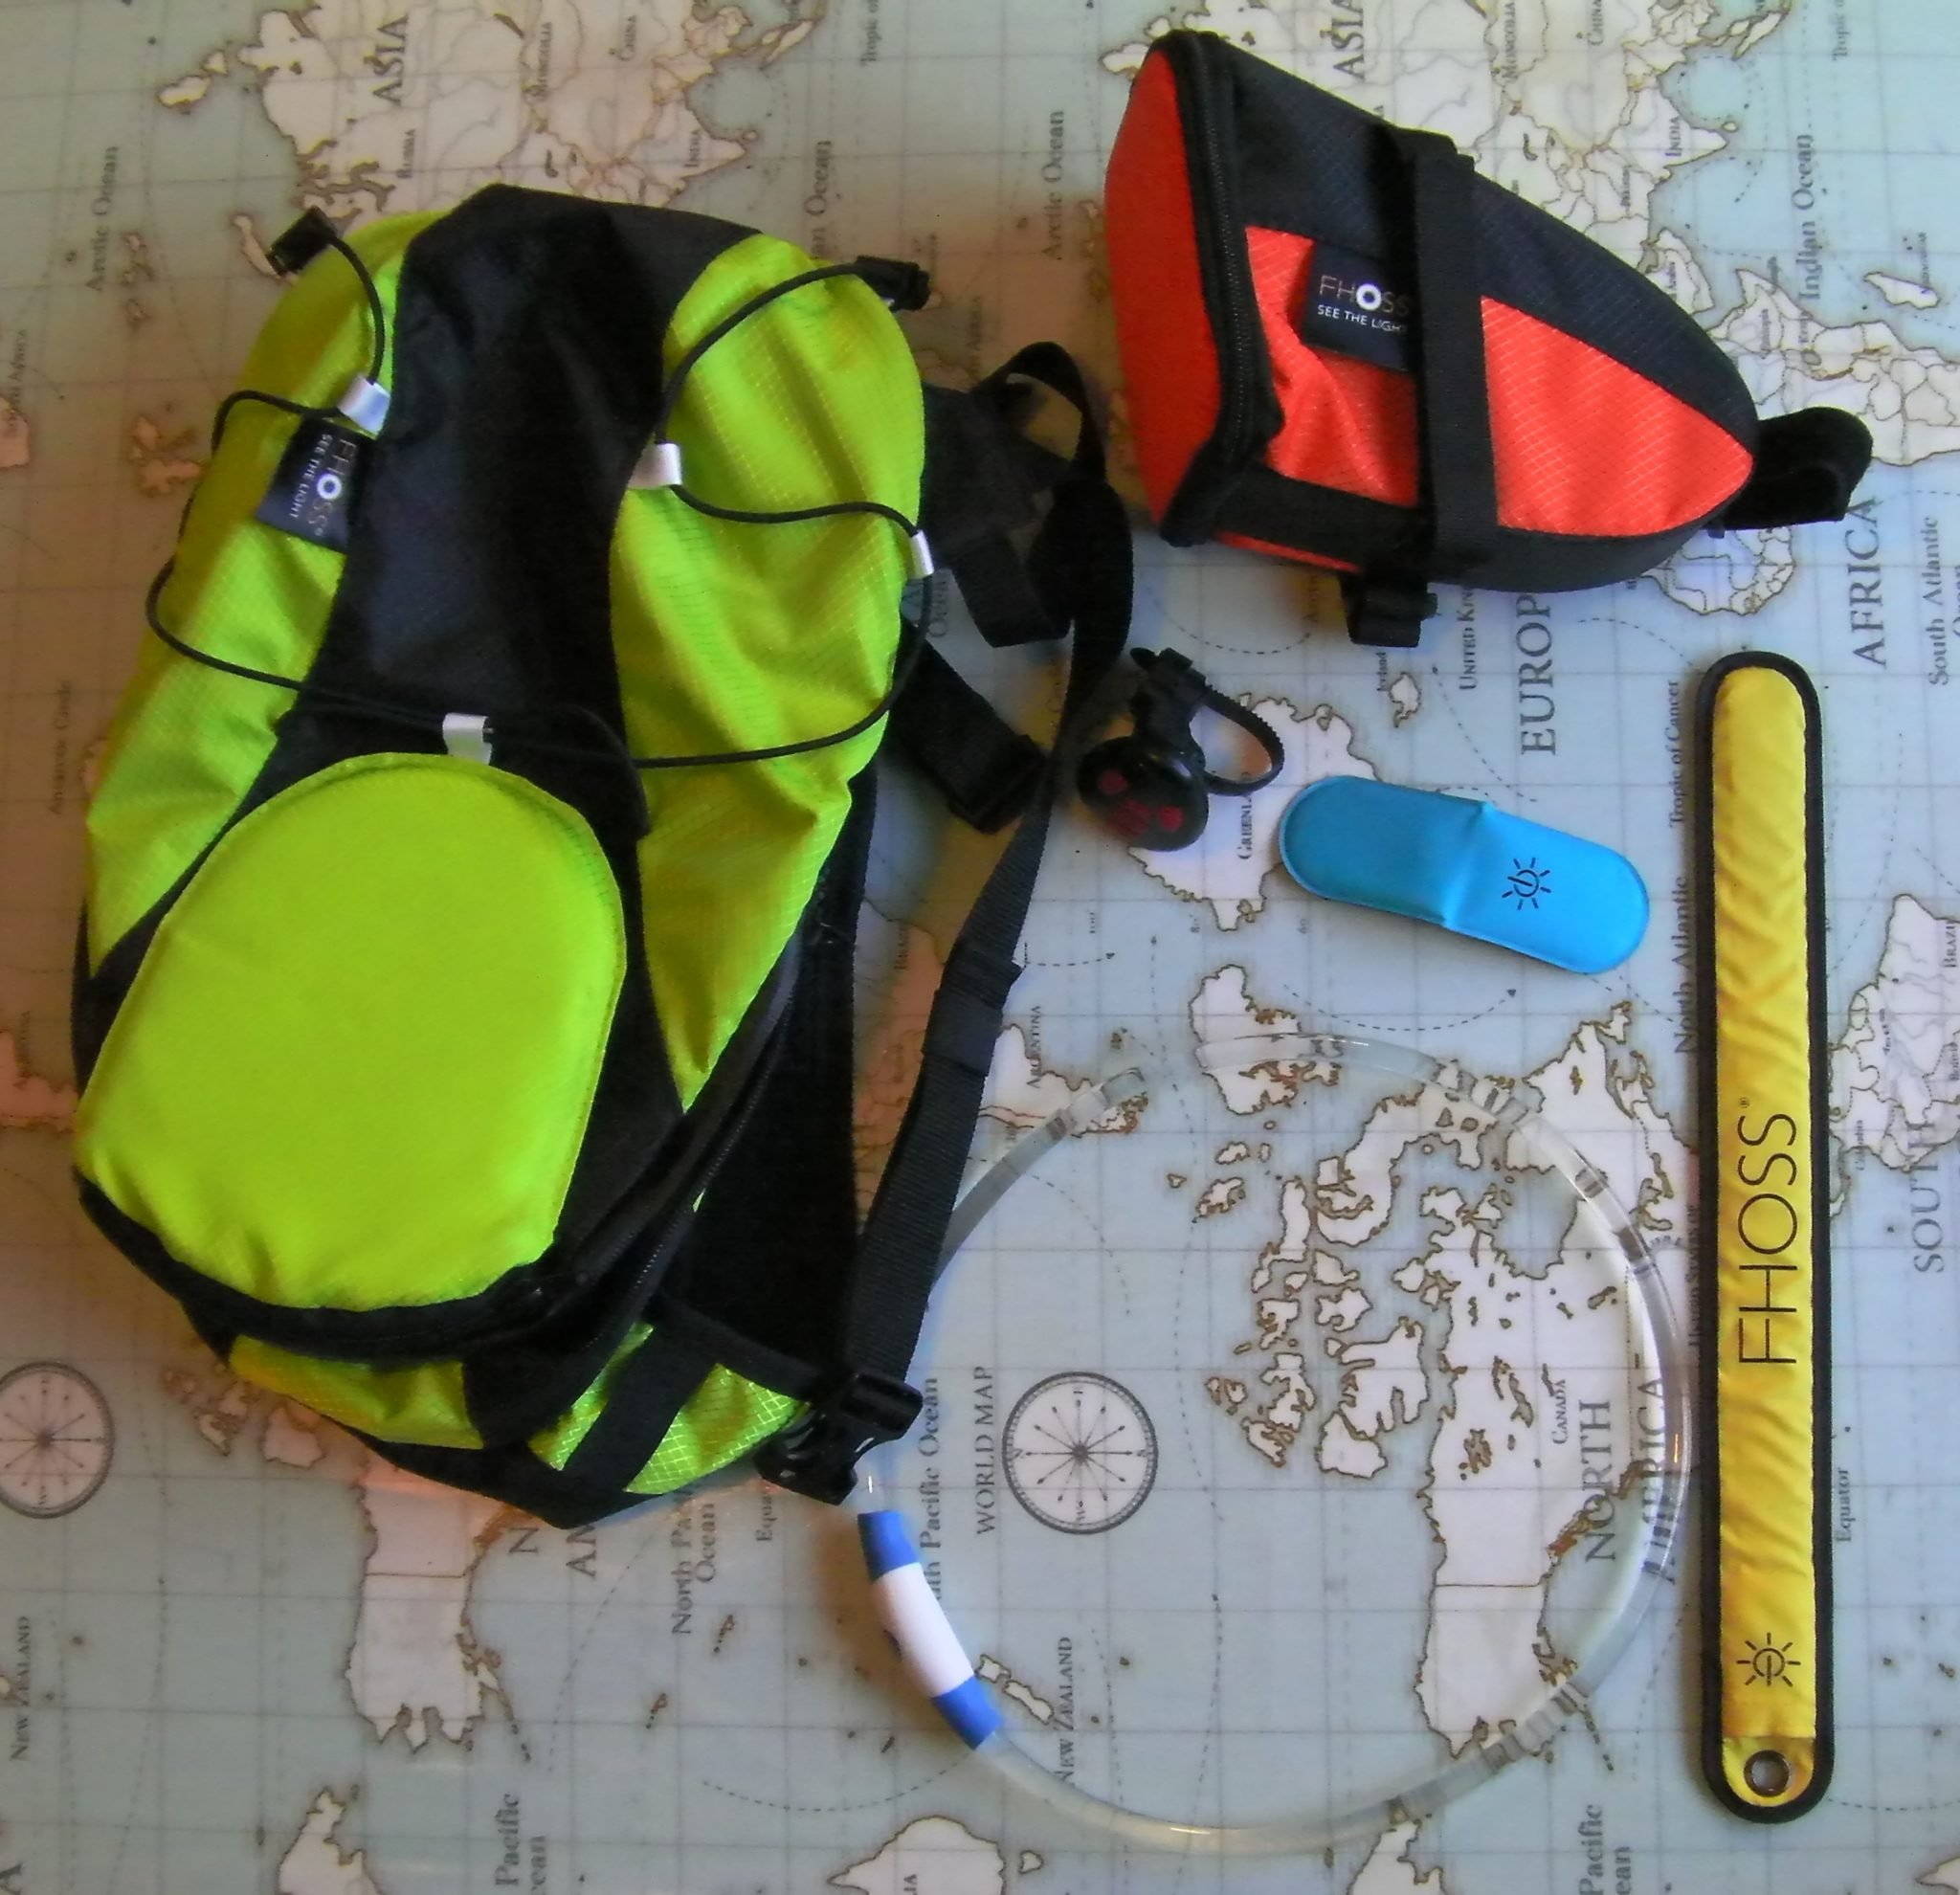 Fhoss Illuminated Safety Products Review